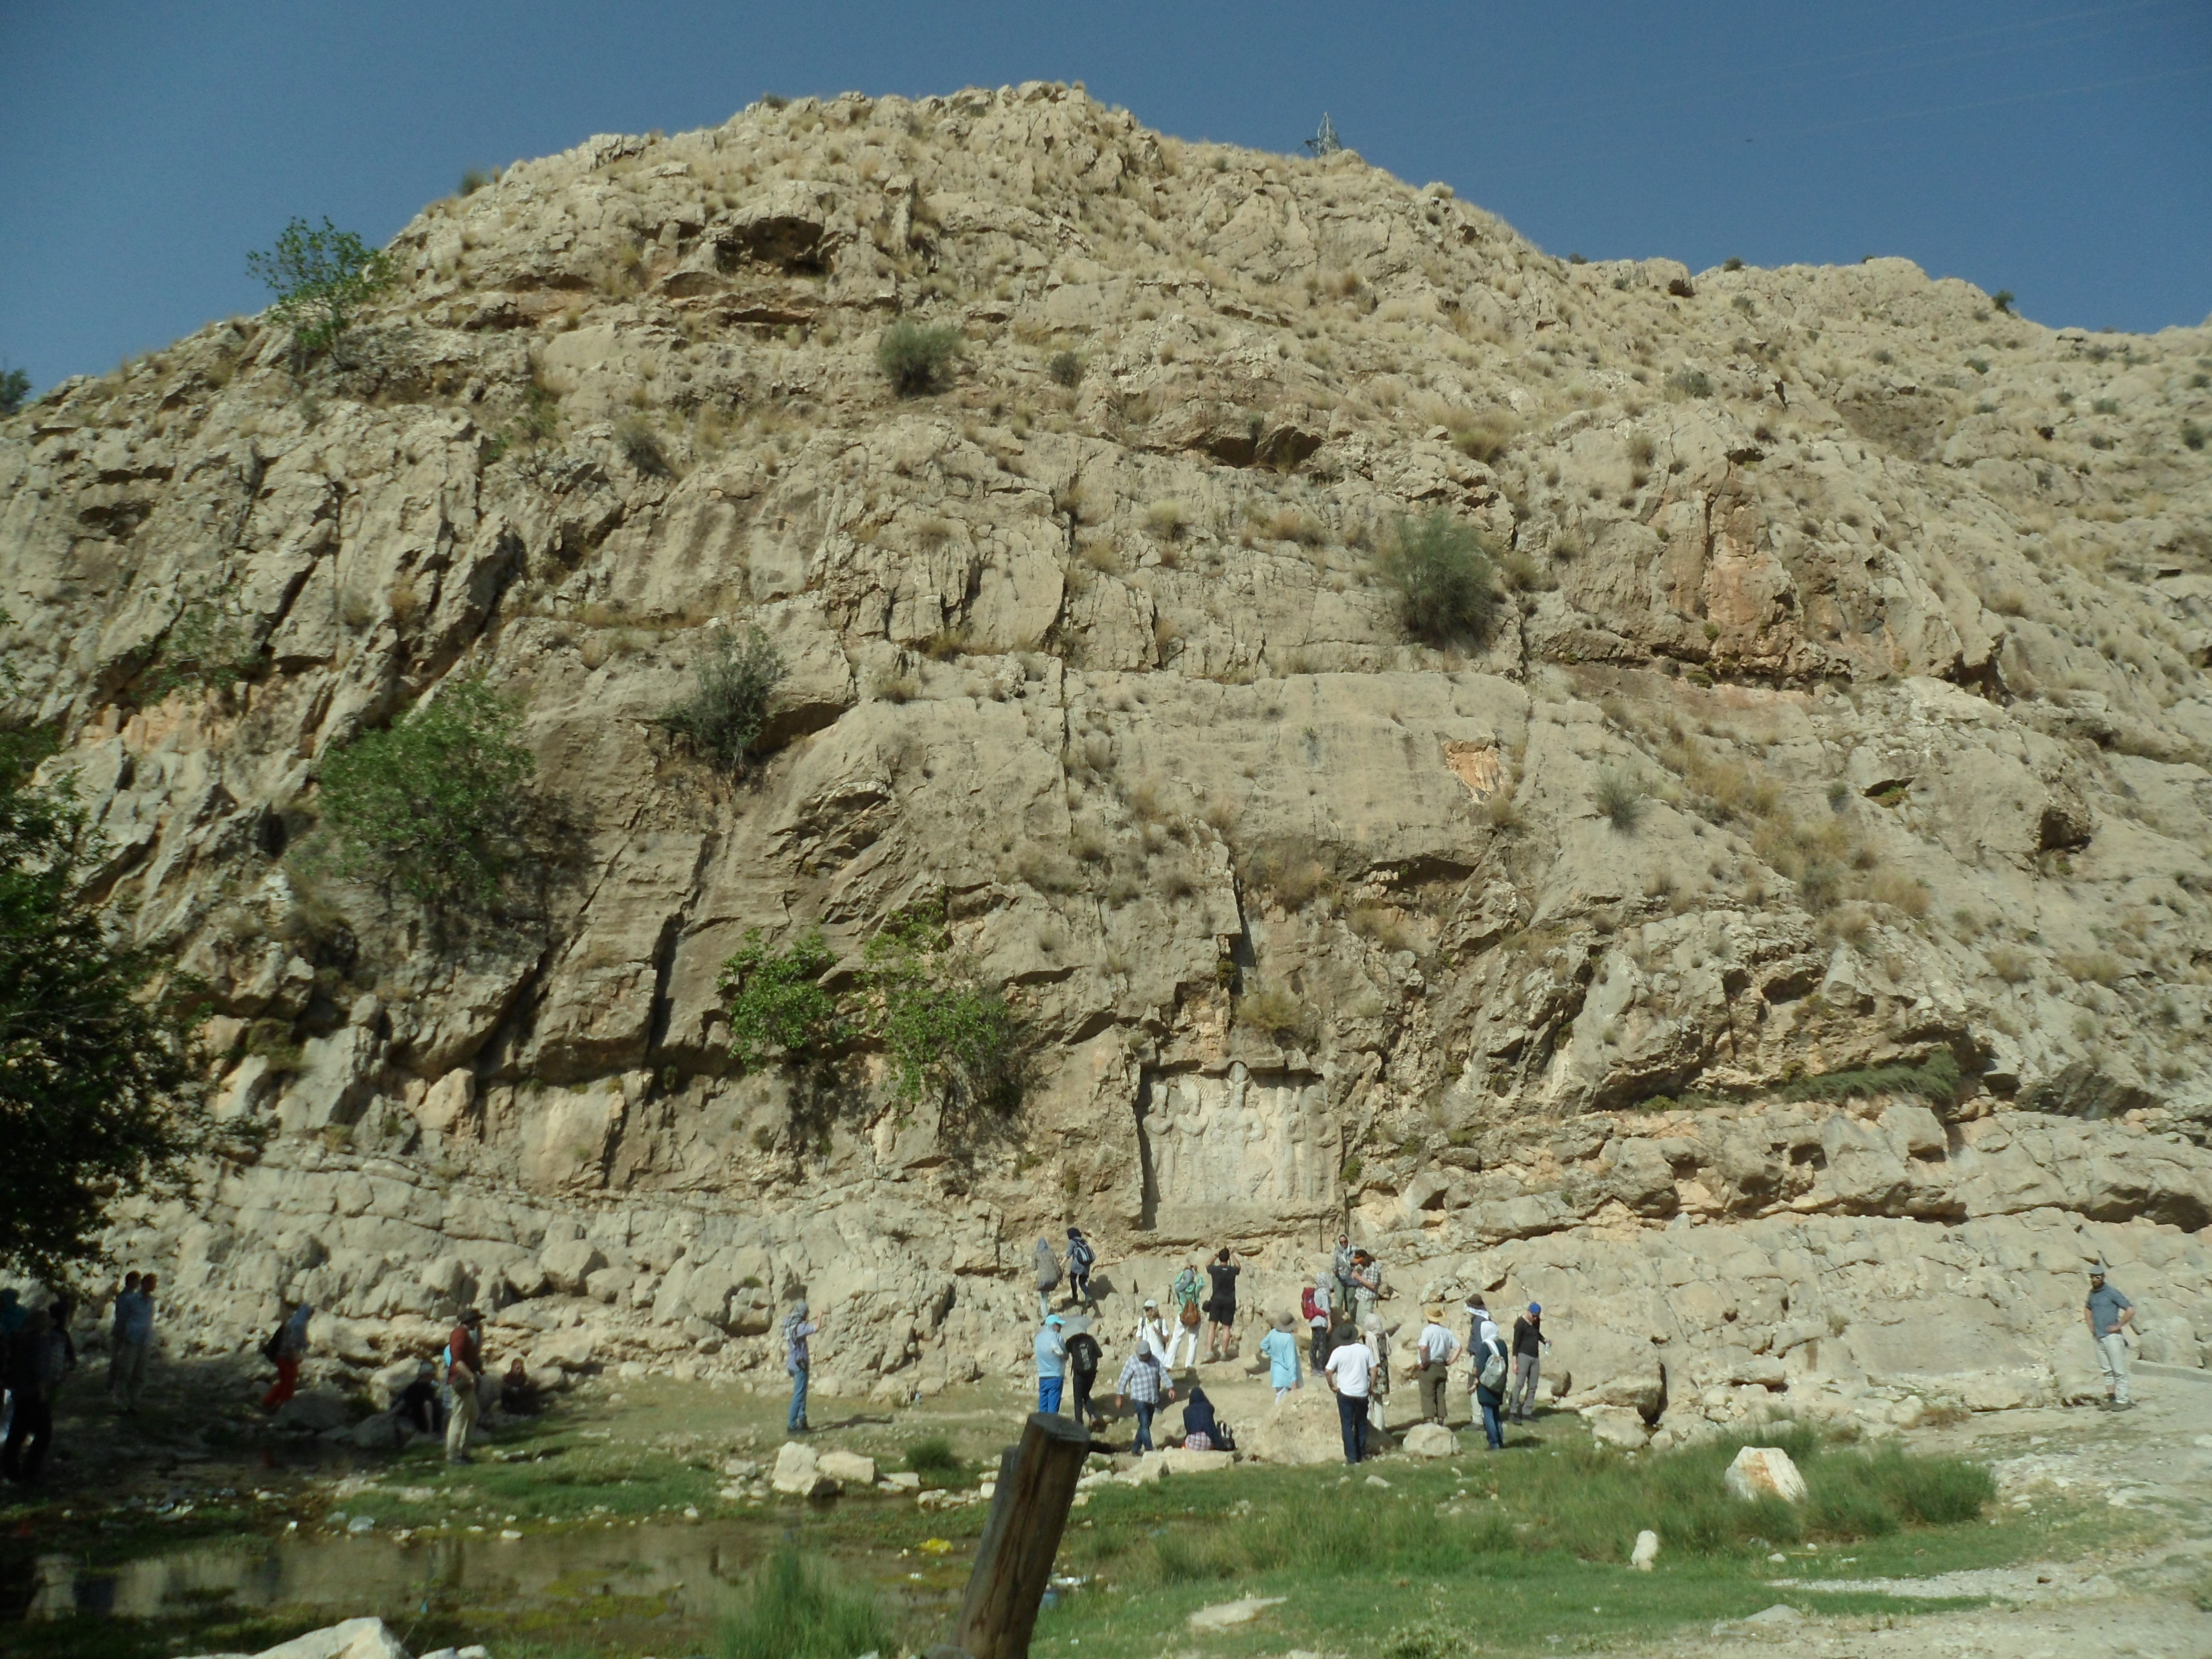 A relief of an enthroned king carved into a cliff over a natural spring